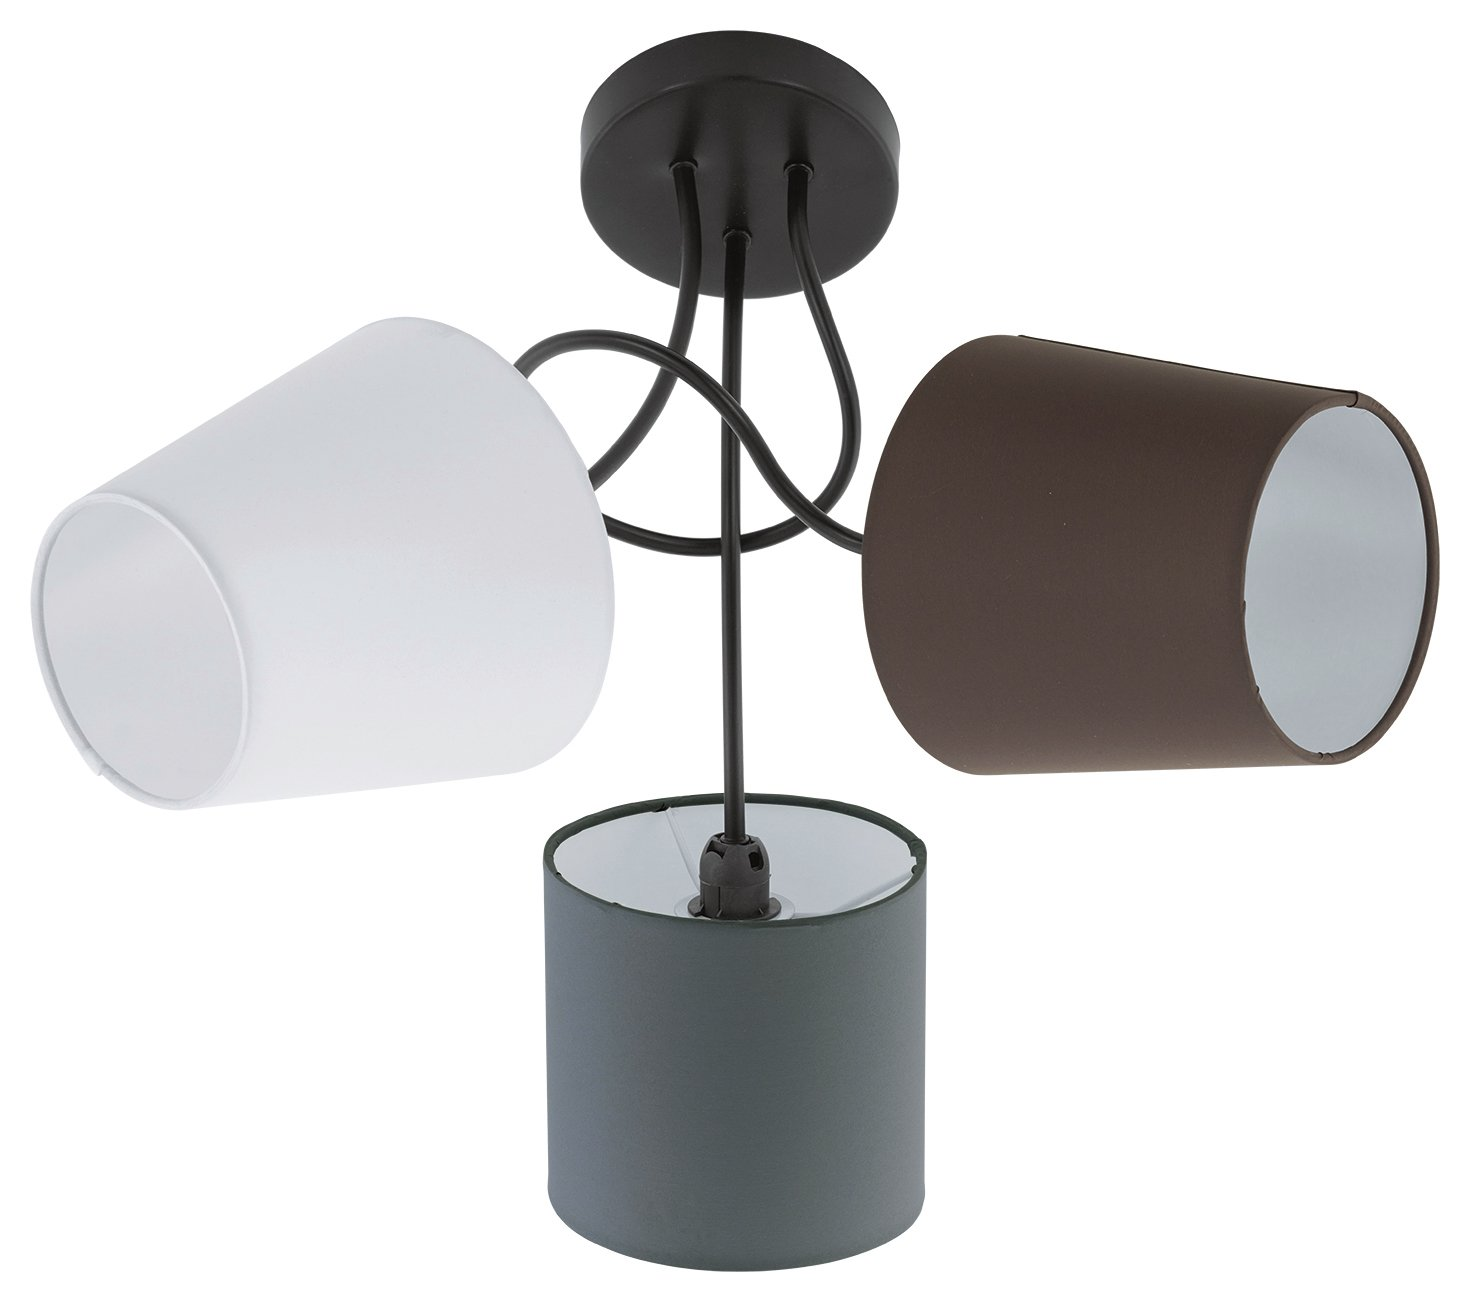 Image of Eglo Almeida 3 Ceiling Lights with Fabric Shade